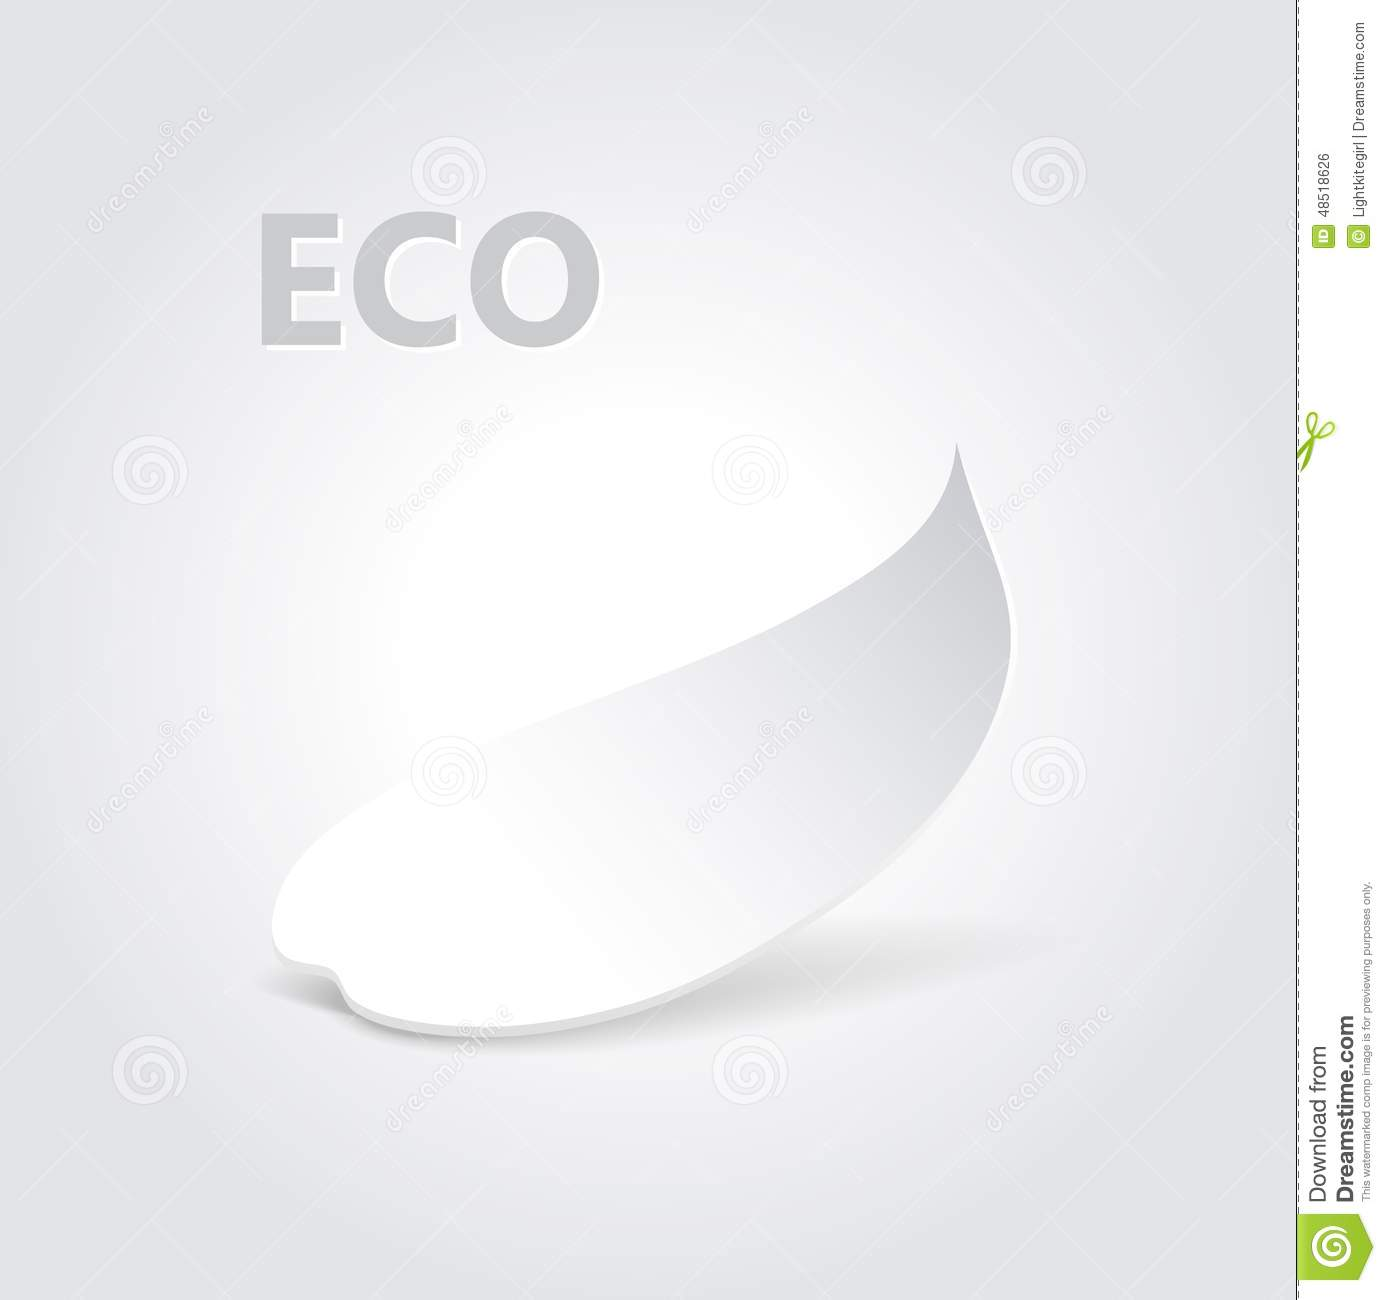 Eco Origami Leaf Vector Illustration Stock